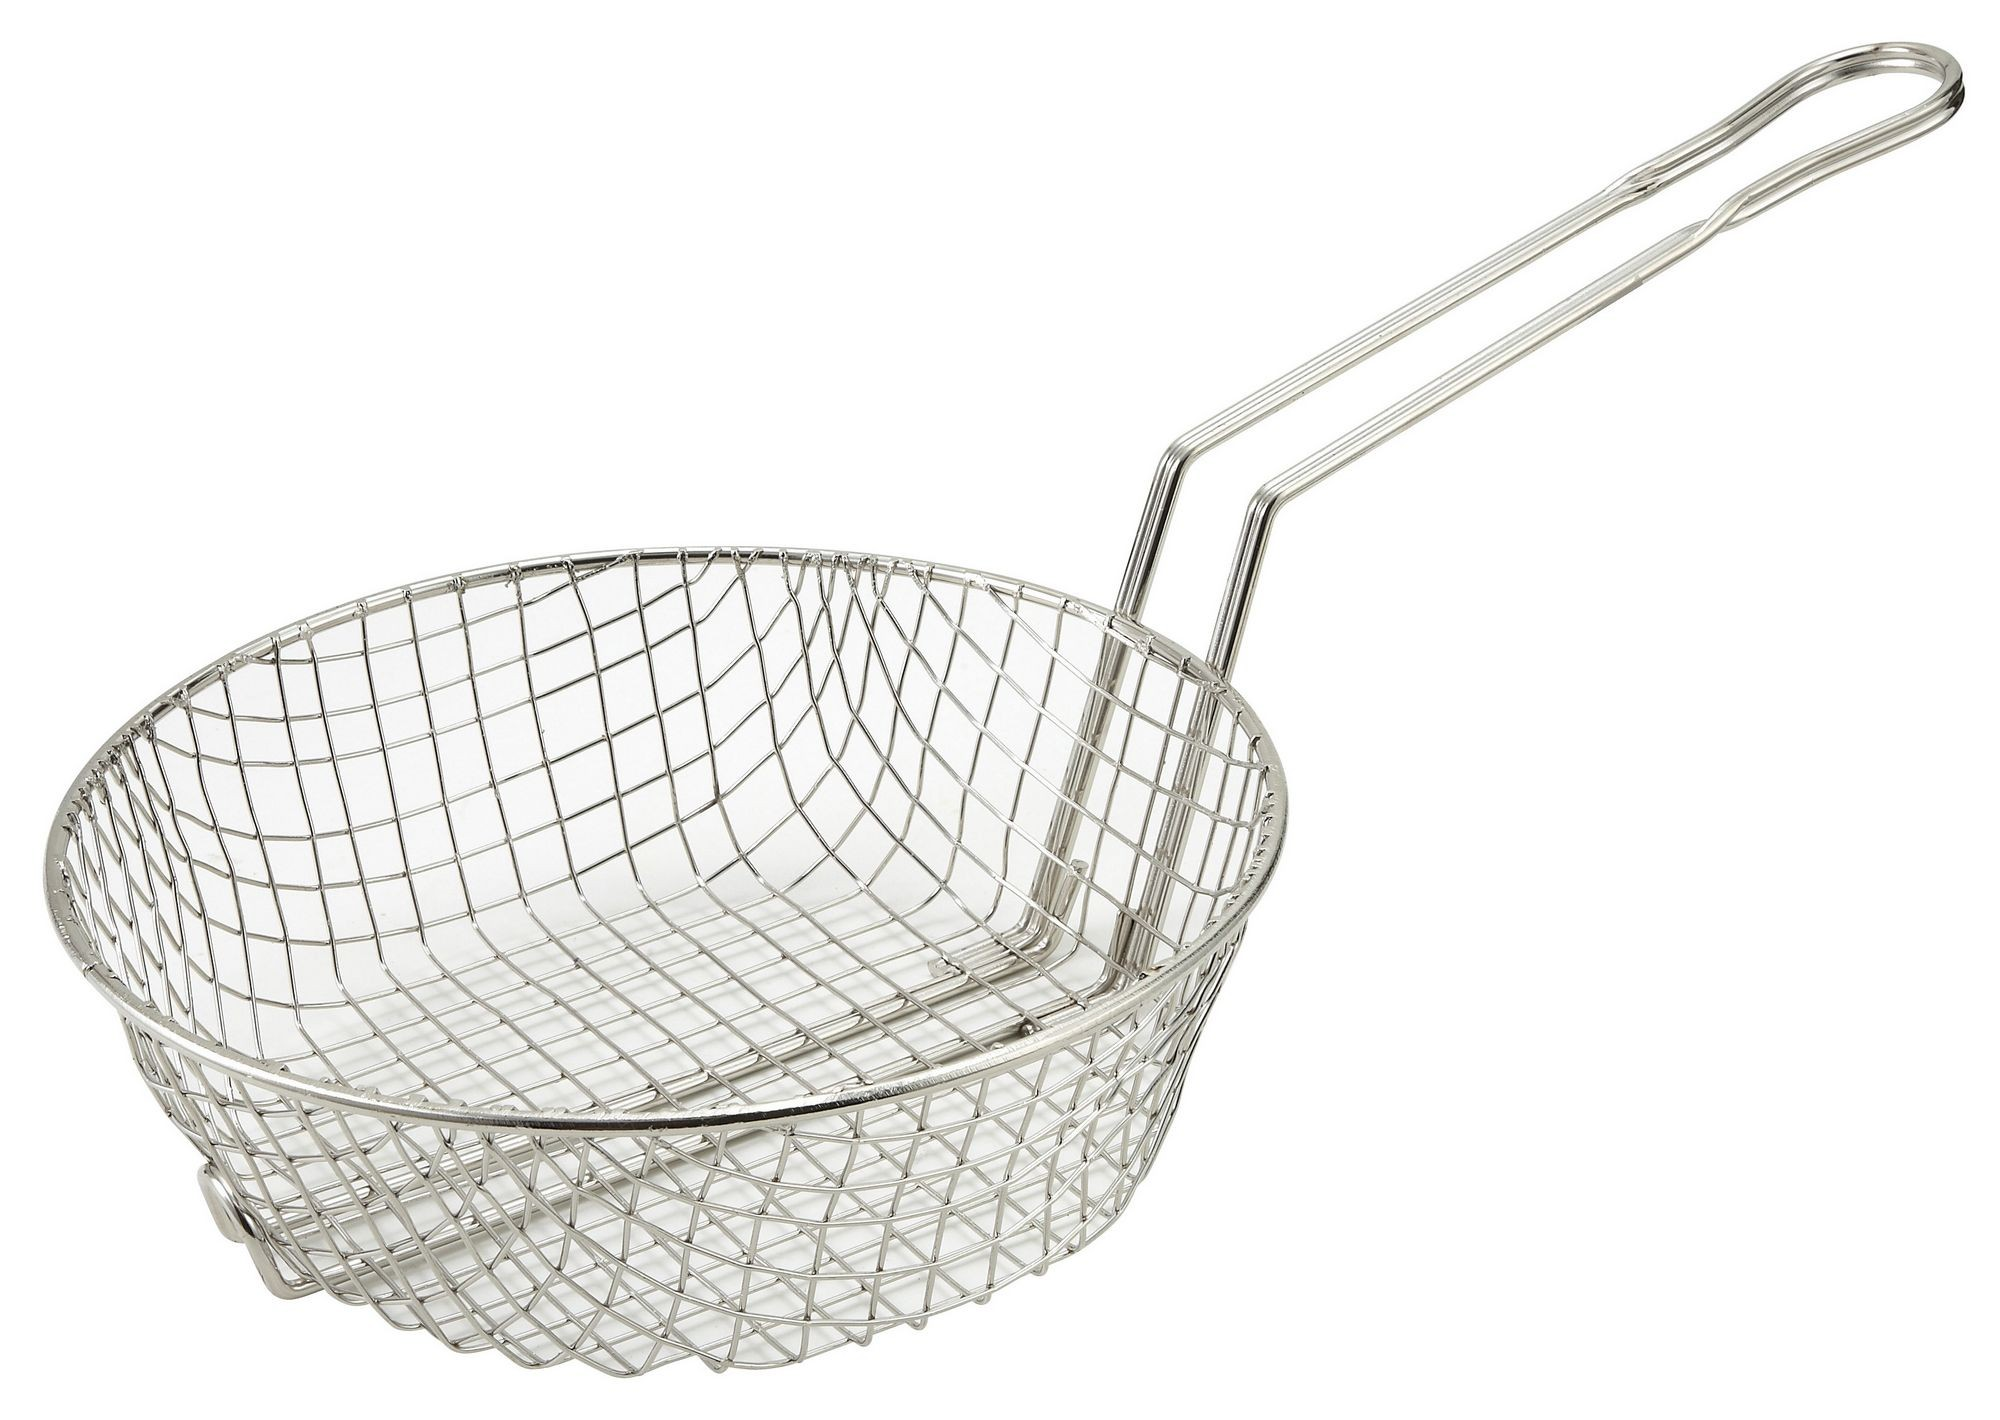 Coarse Mesh Culinary Basket - 8